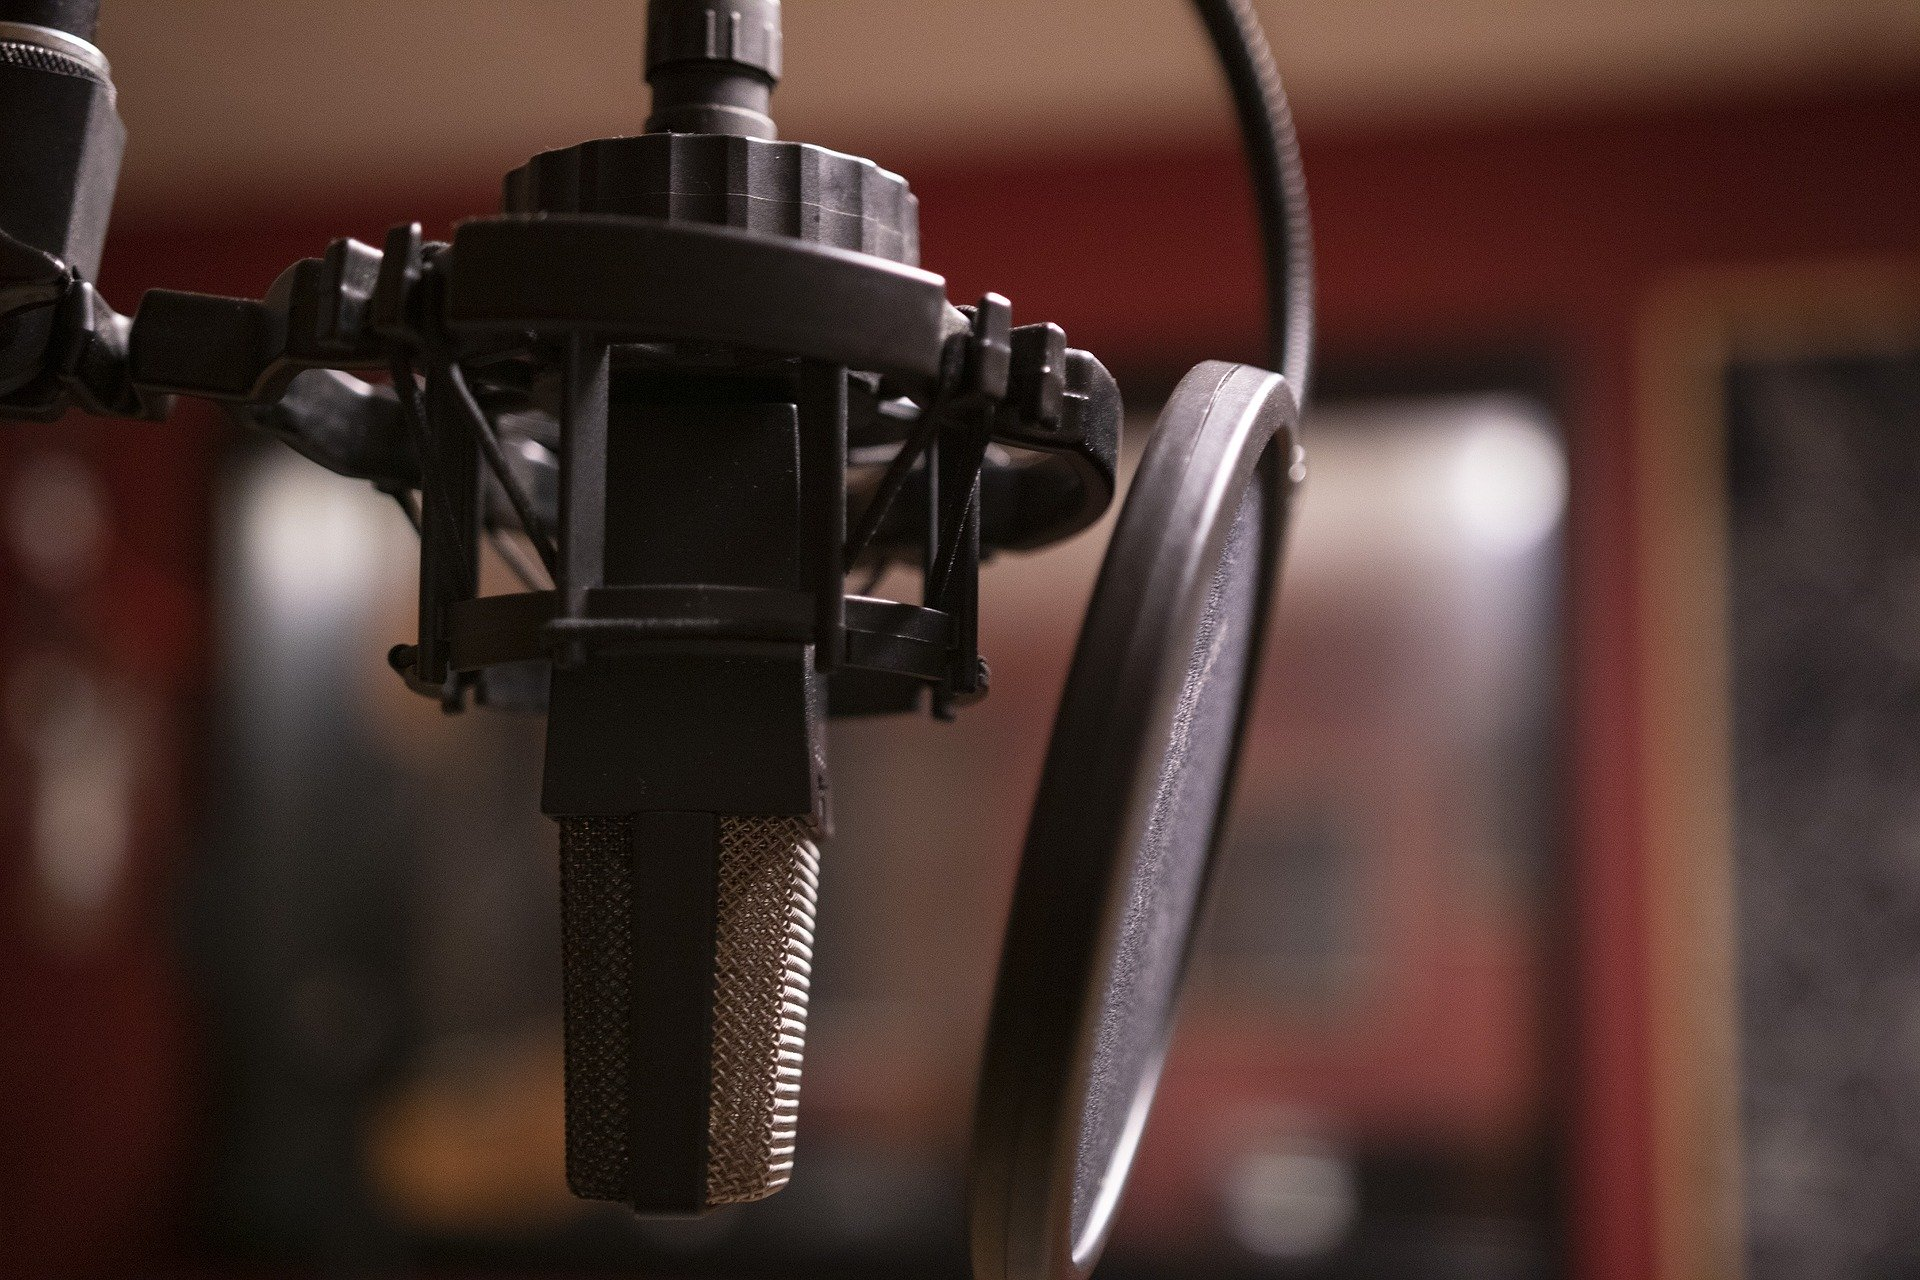 A photo of professional recording equipment being used to produce a podcast.